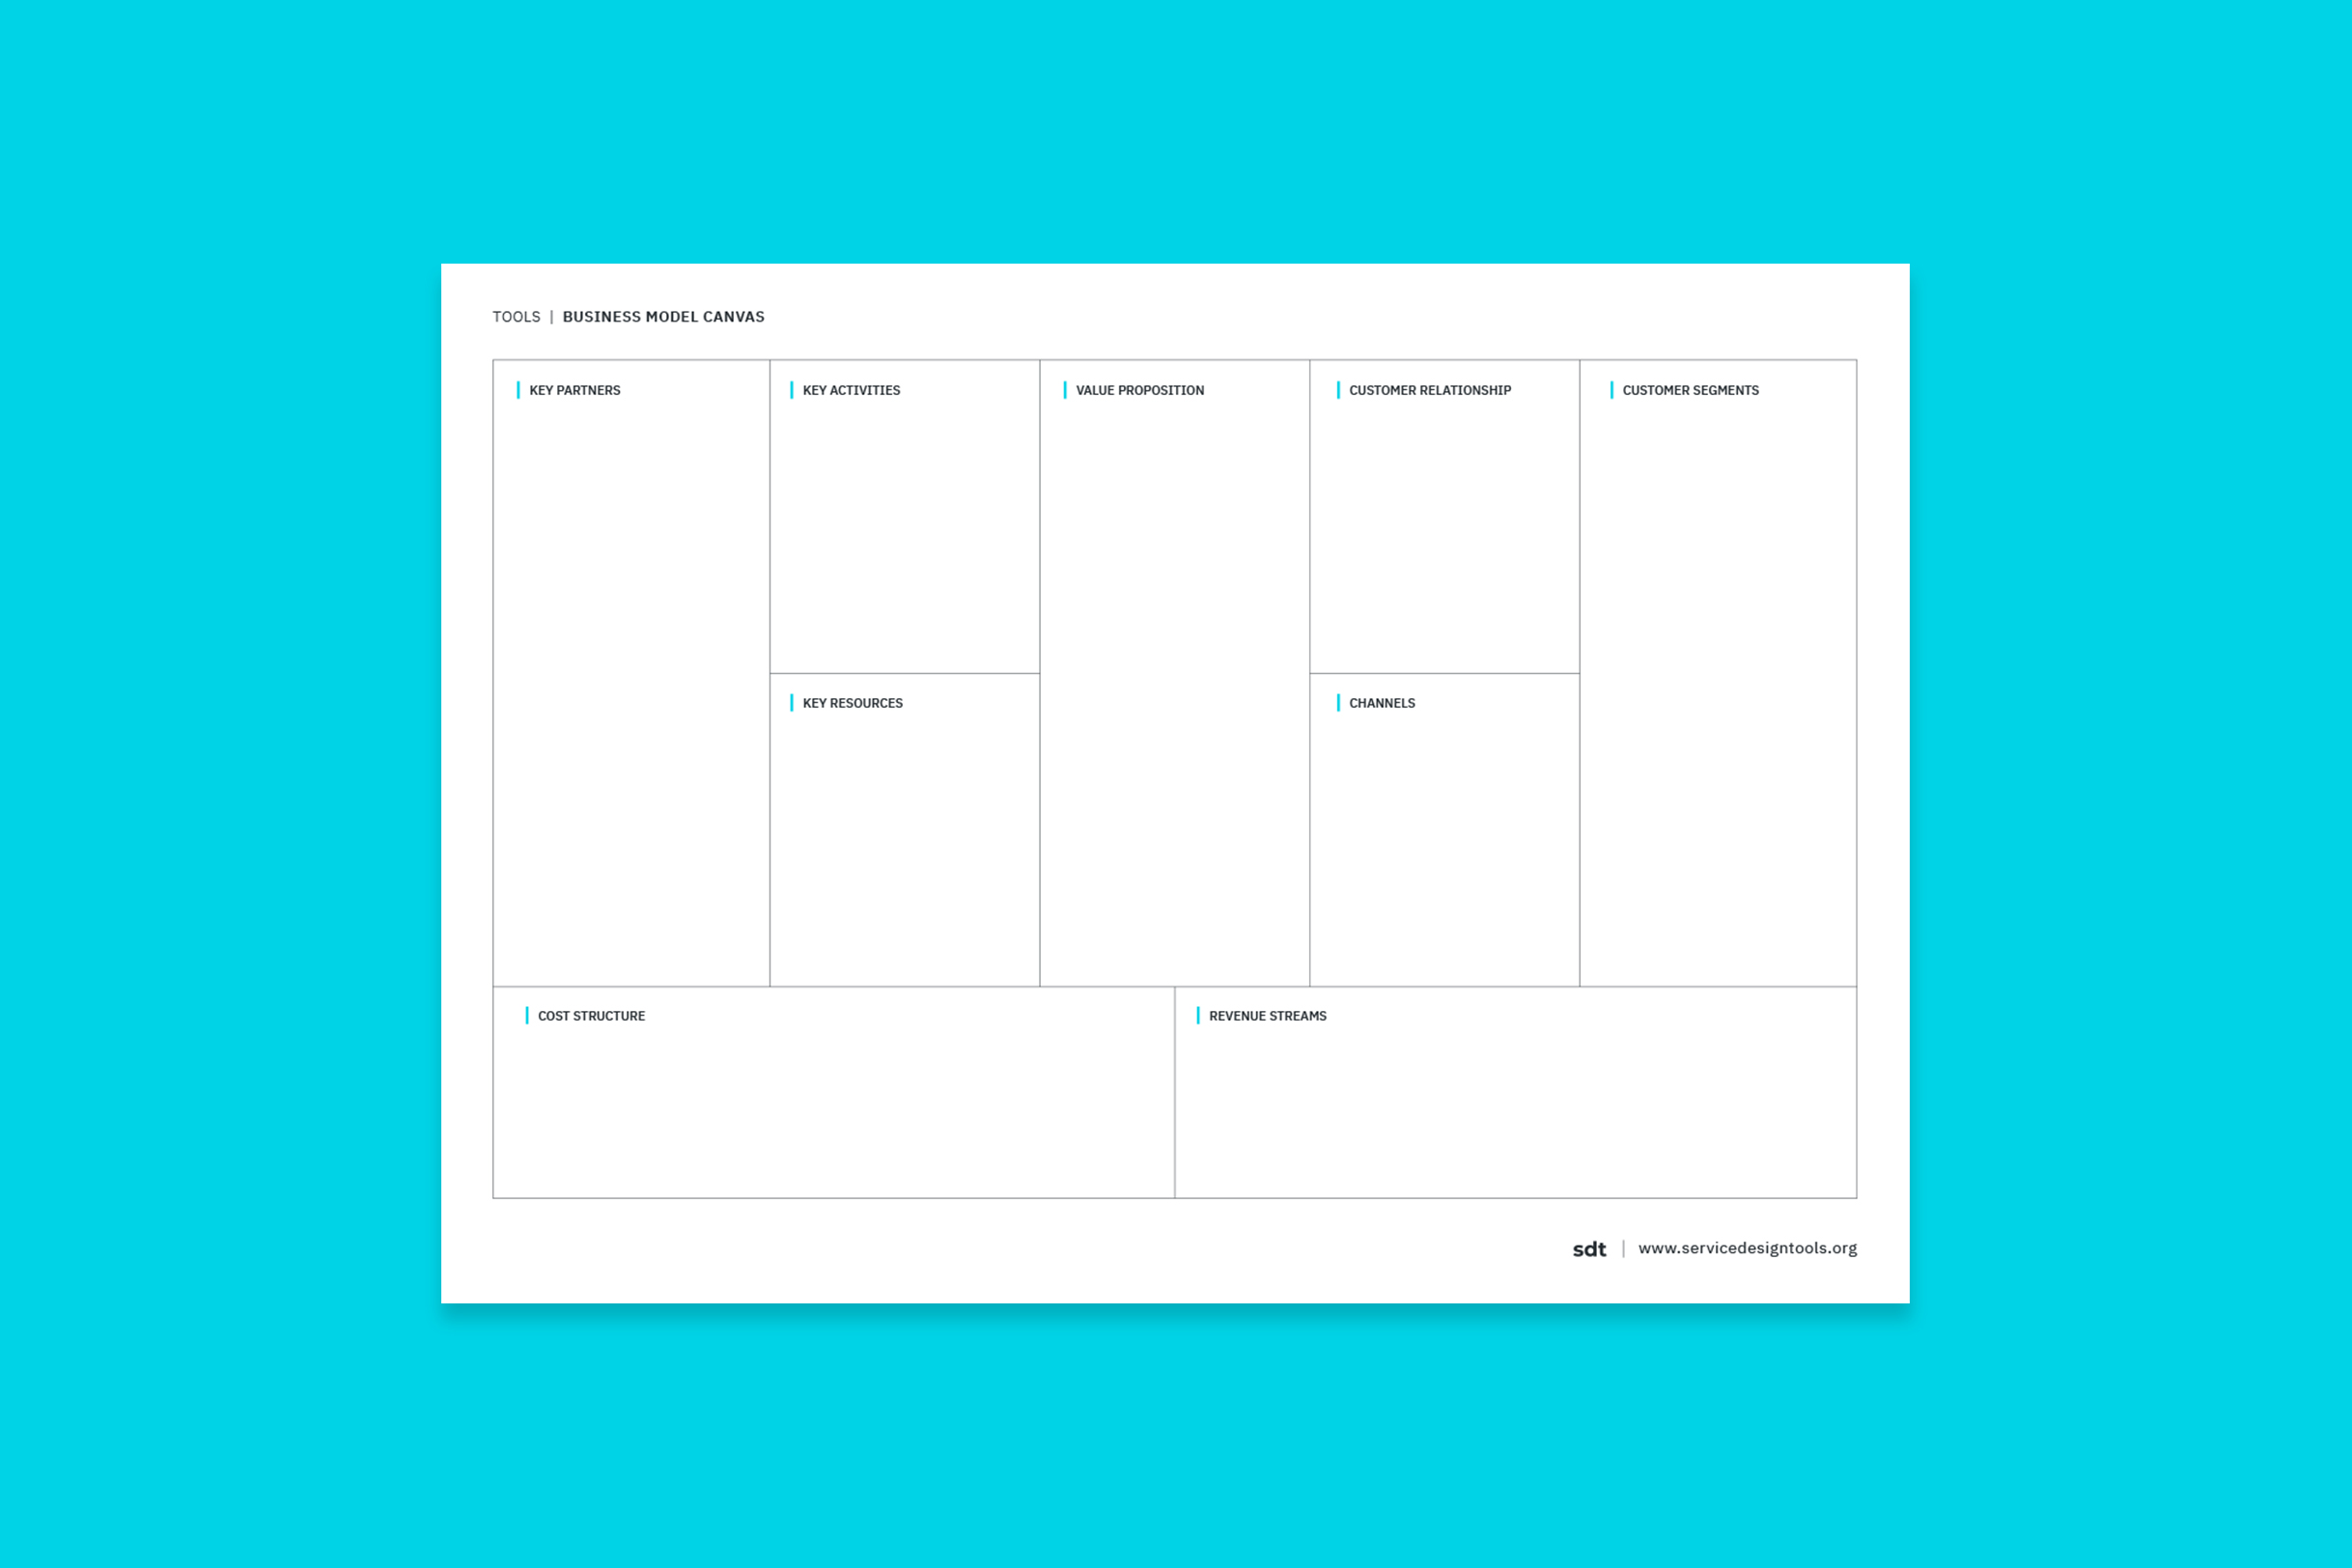 Preview image of the template for Business Model Canvas